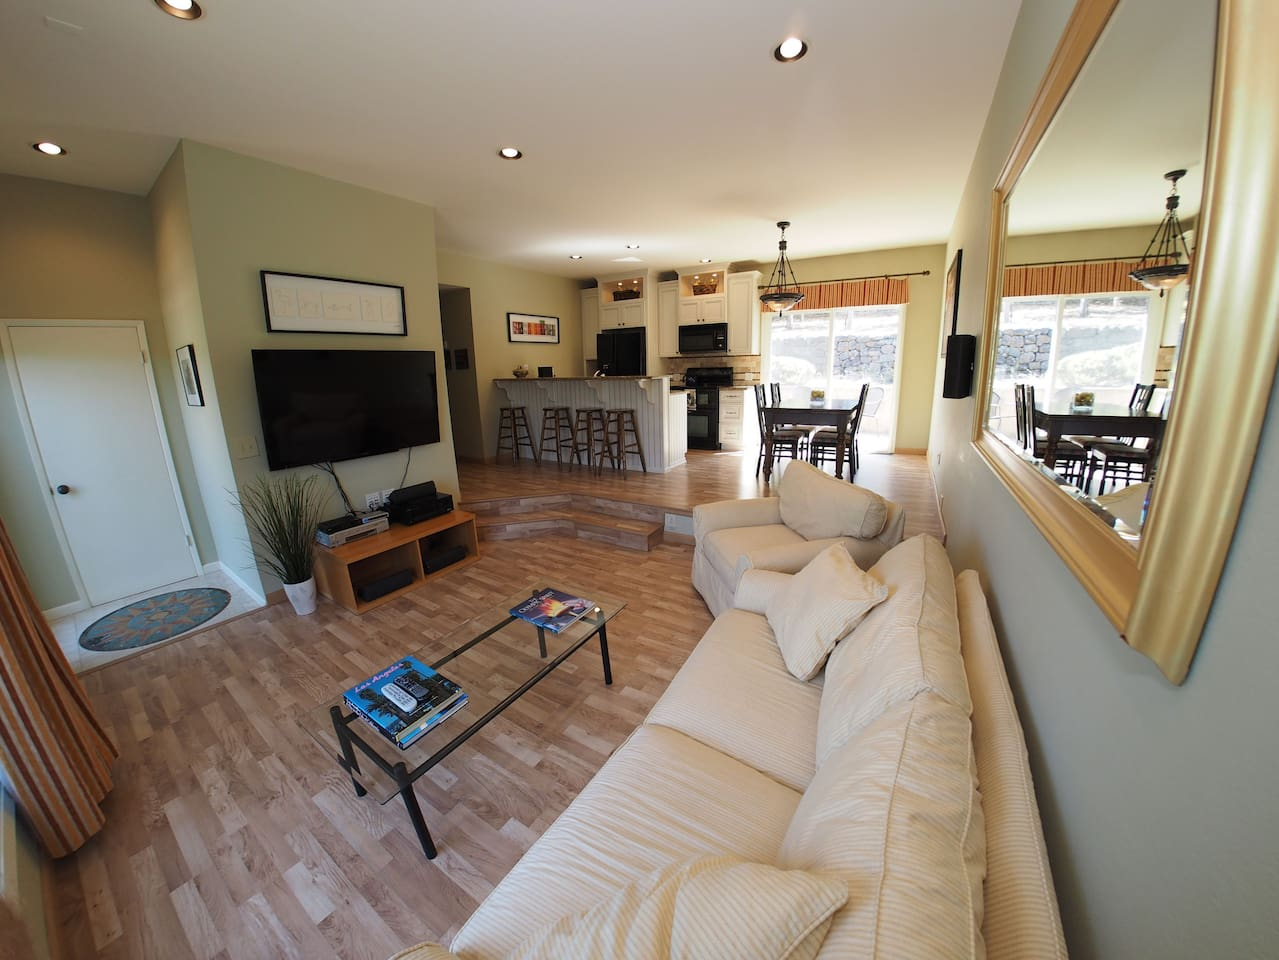 Open floor plan among entry, living room, kitchen and dining area